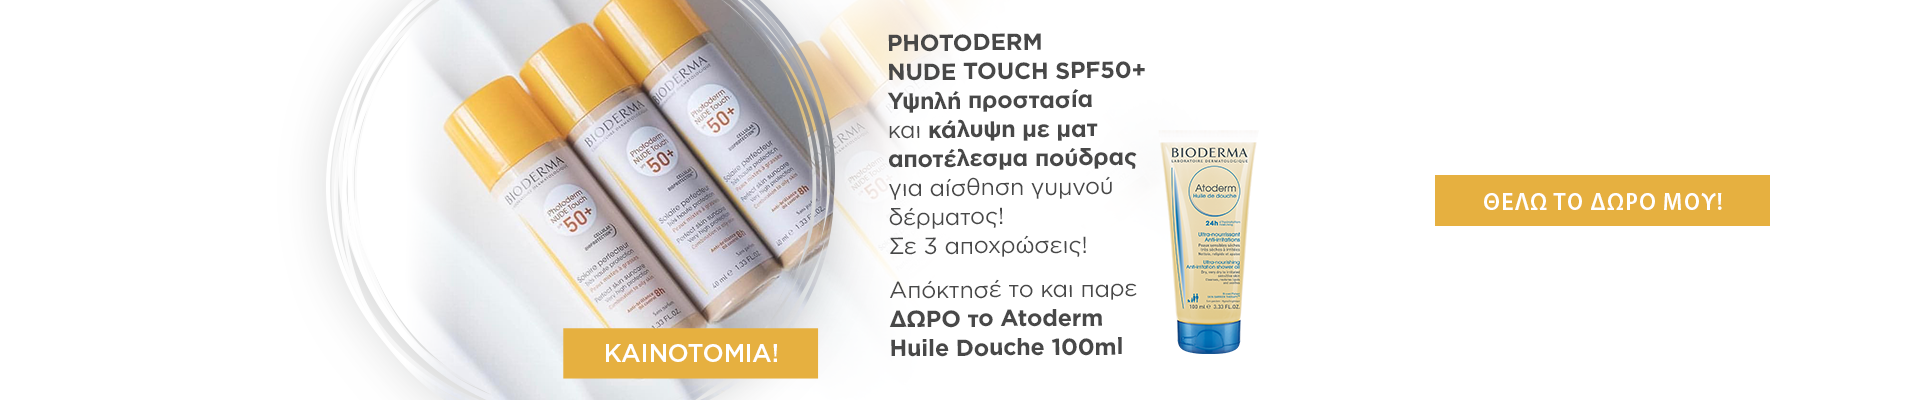 Bioderma Nude Touch 18-4-19